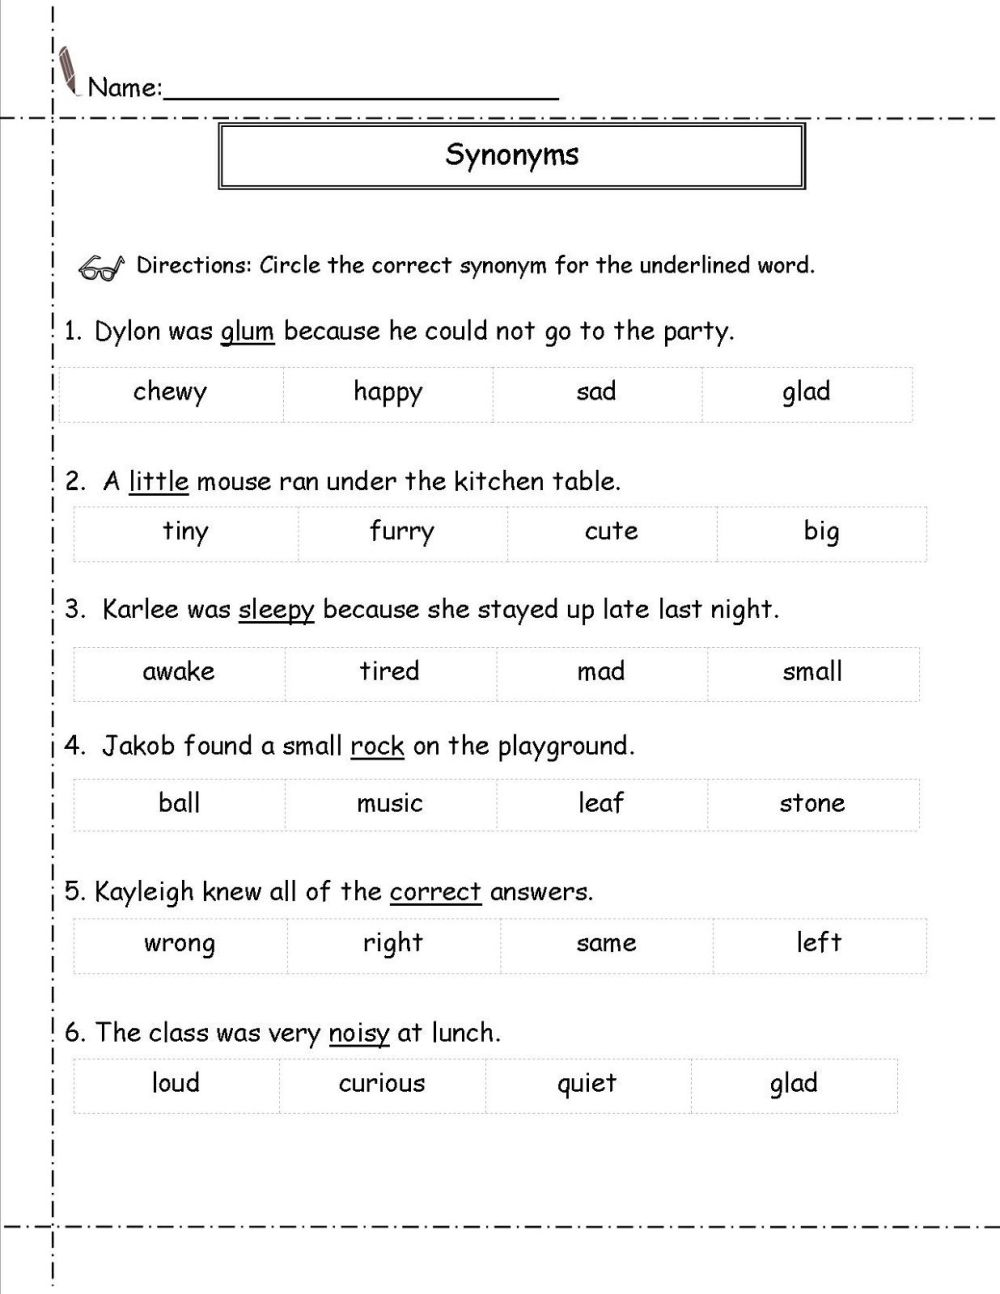 medium resolution of Character Education Worksheets   Social Skills   Character Education on  Best Worksheets Collection 3617